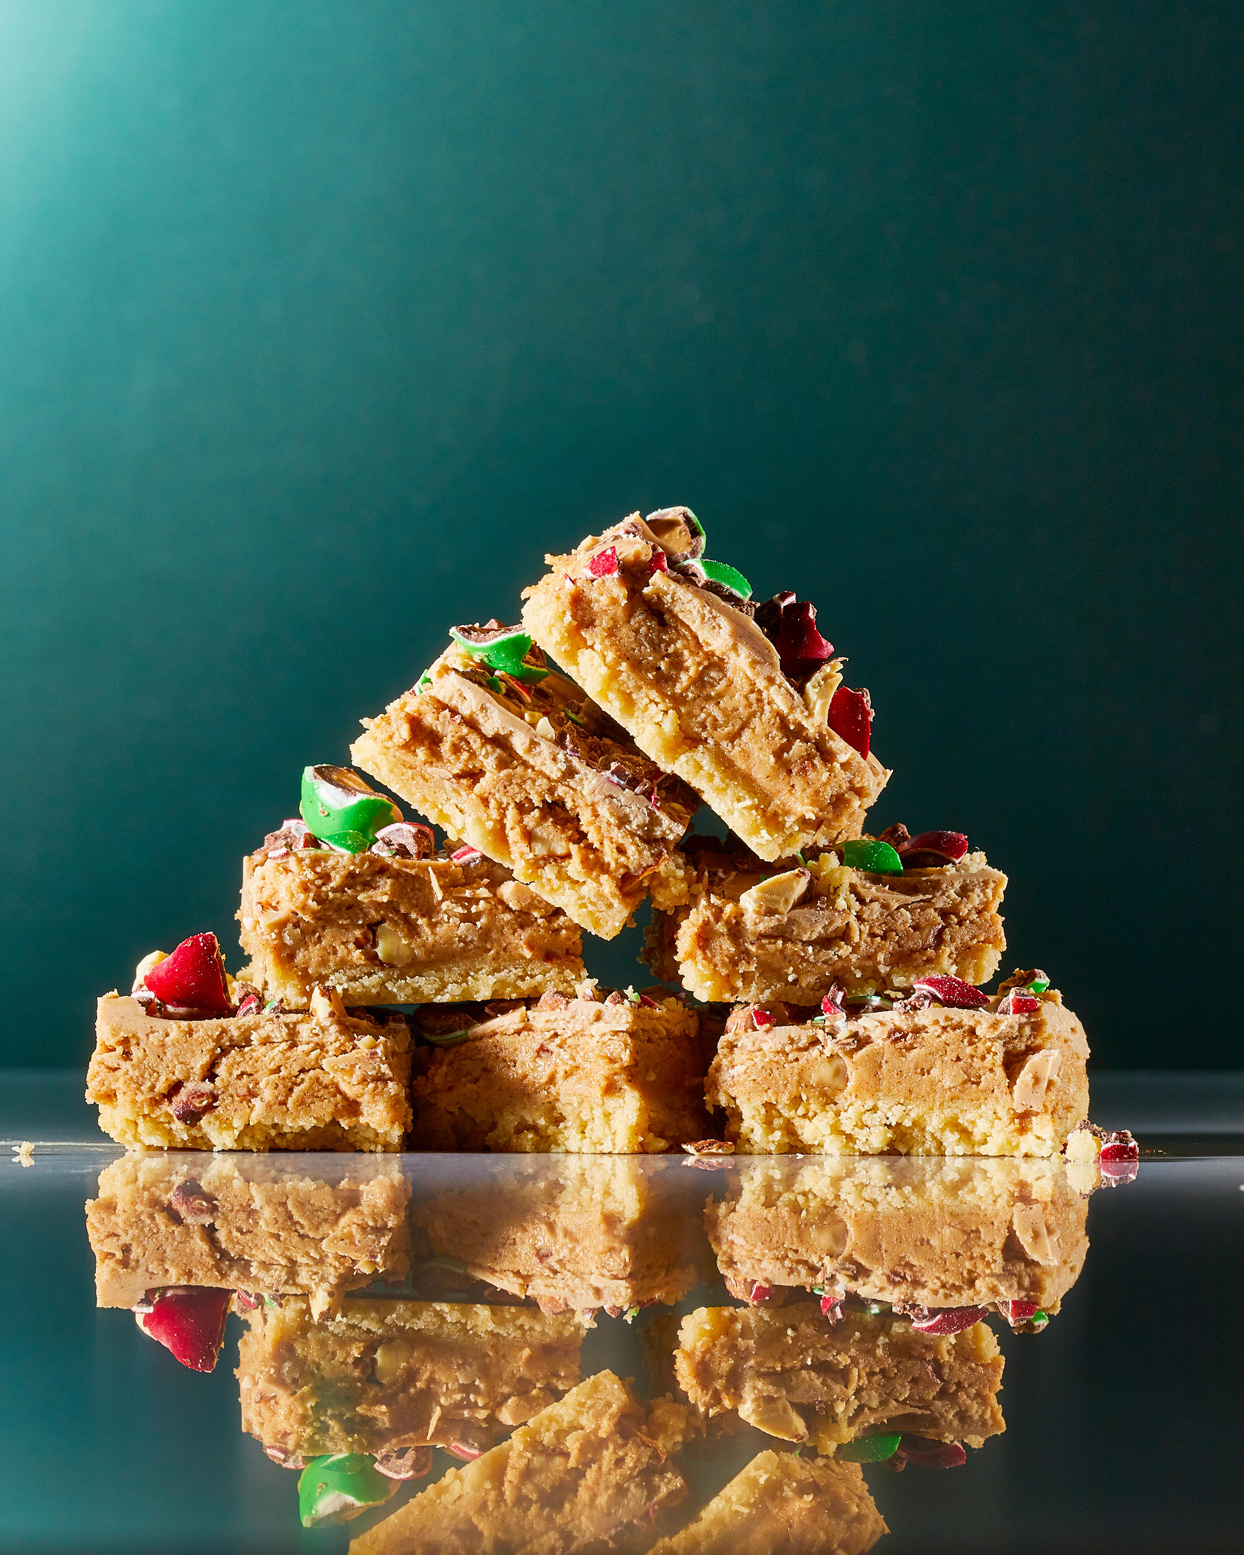 Almond Crunch Bars stacked on green background